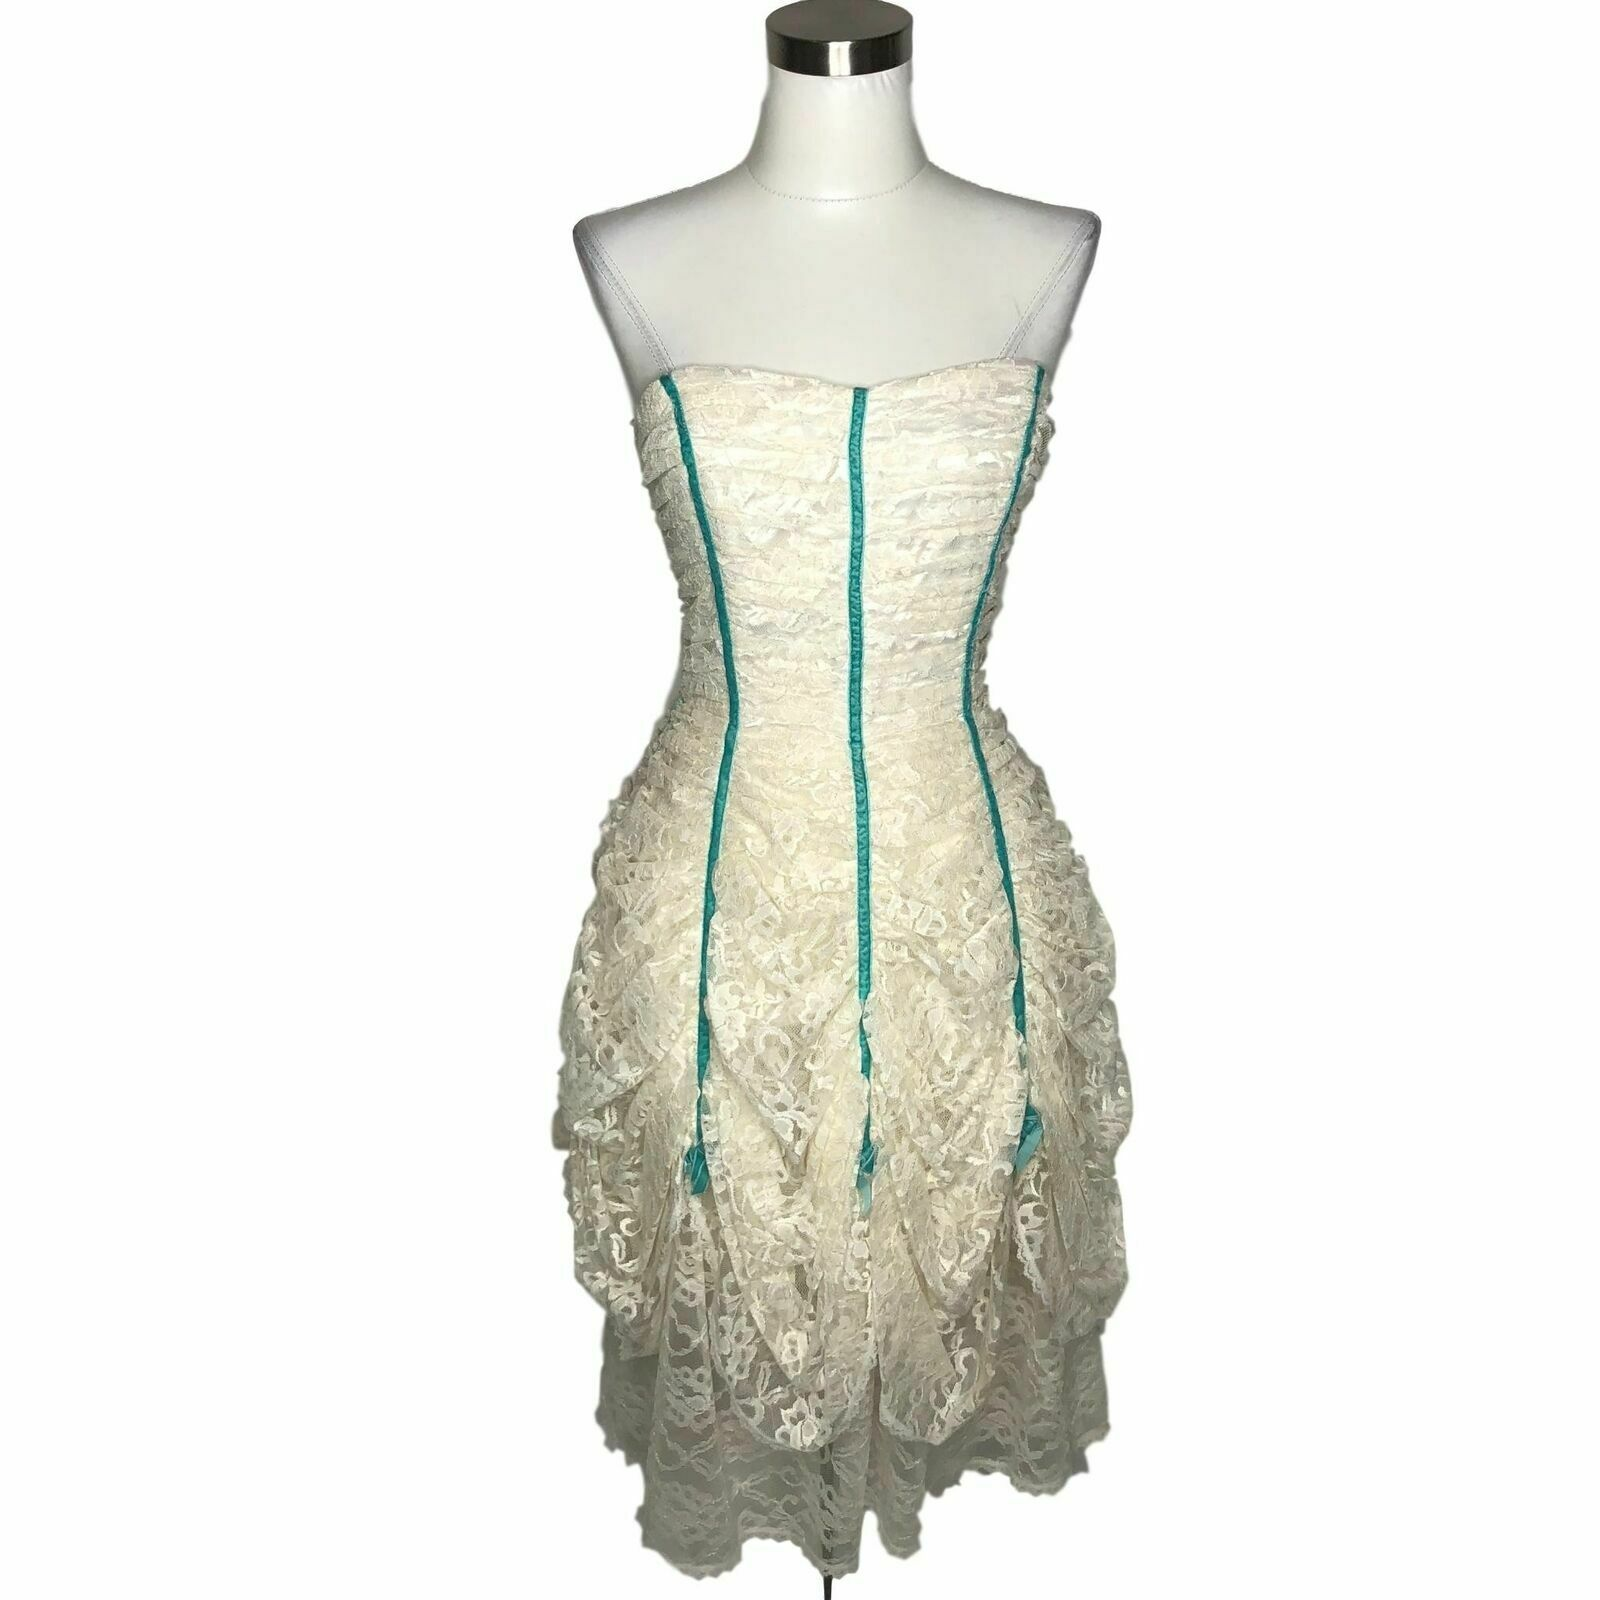 N551 BETSEY JOHNSON Vintage Dress Size 4 Small White bluee Floral Lace Strapless